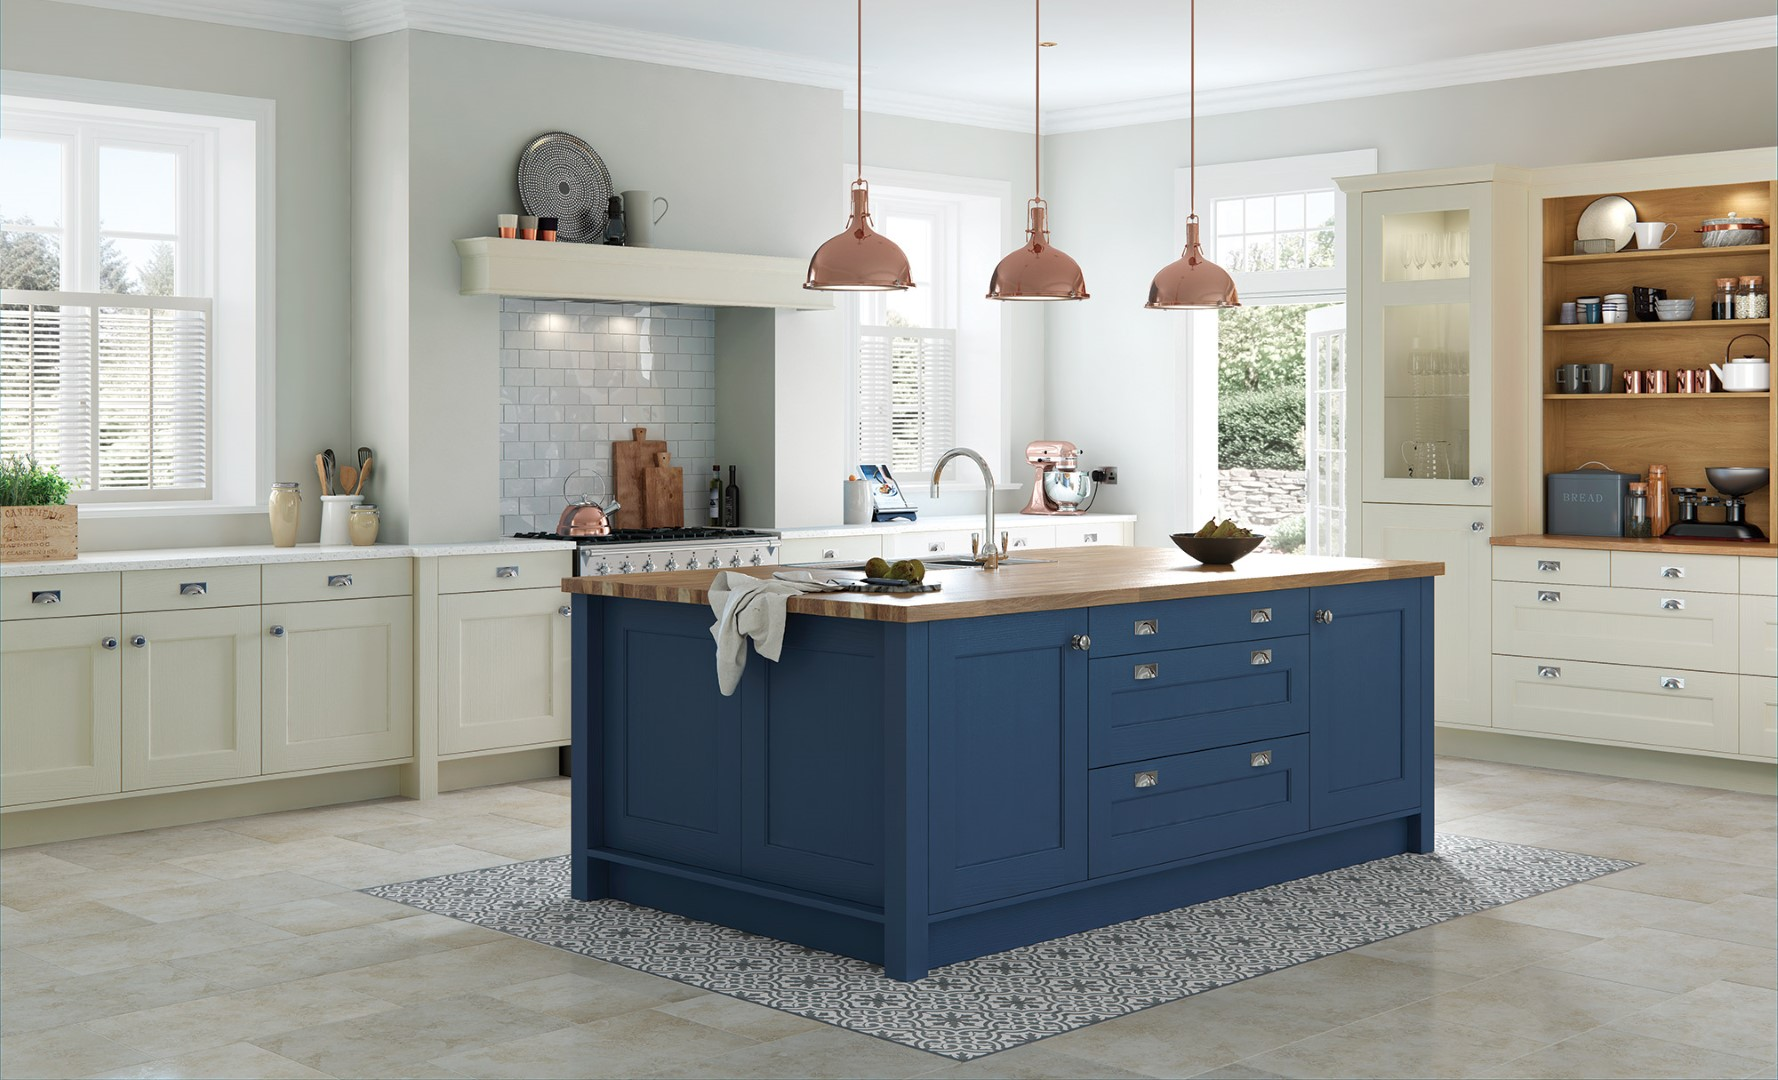 Wakefield Painted Mussel and Parisian Blue Kitchen - Kitchen Design - Alan Kelly Kitchens - Waterford